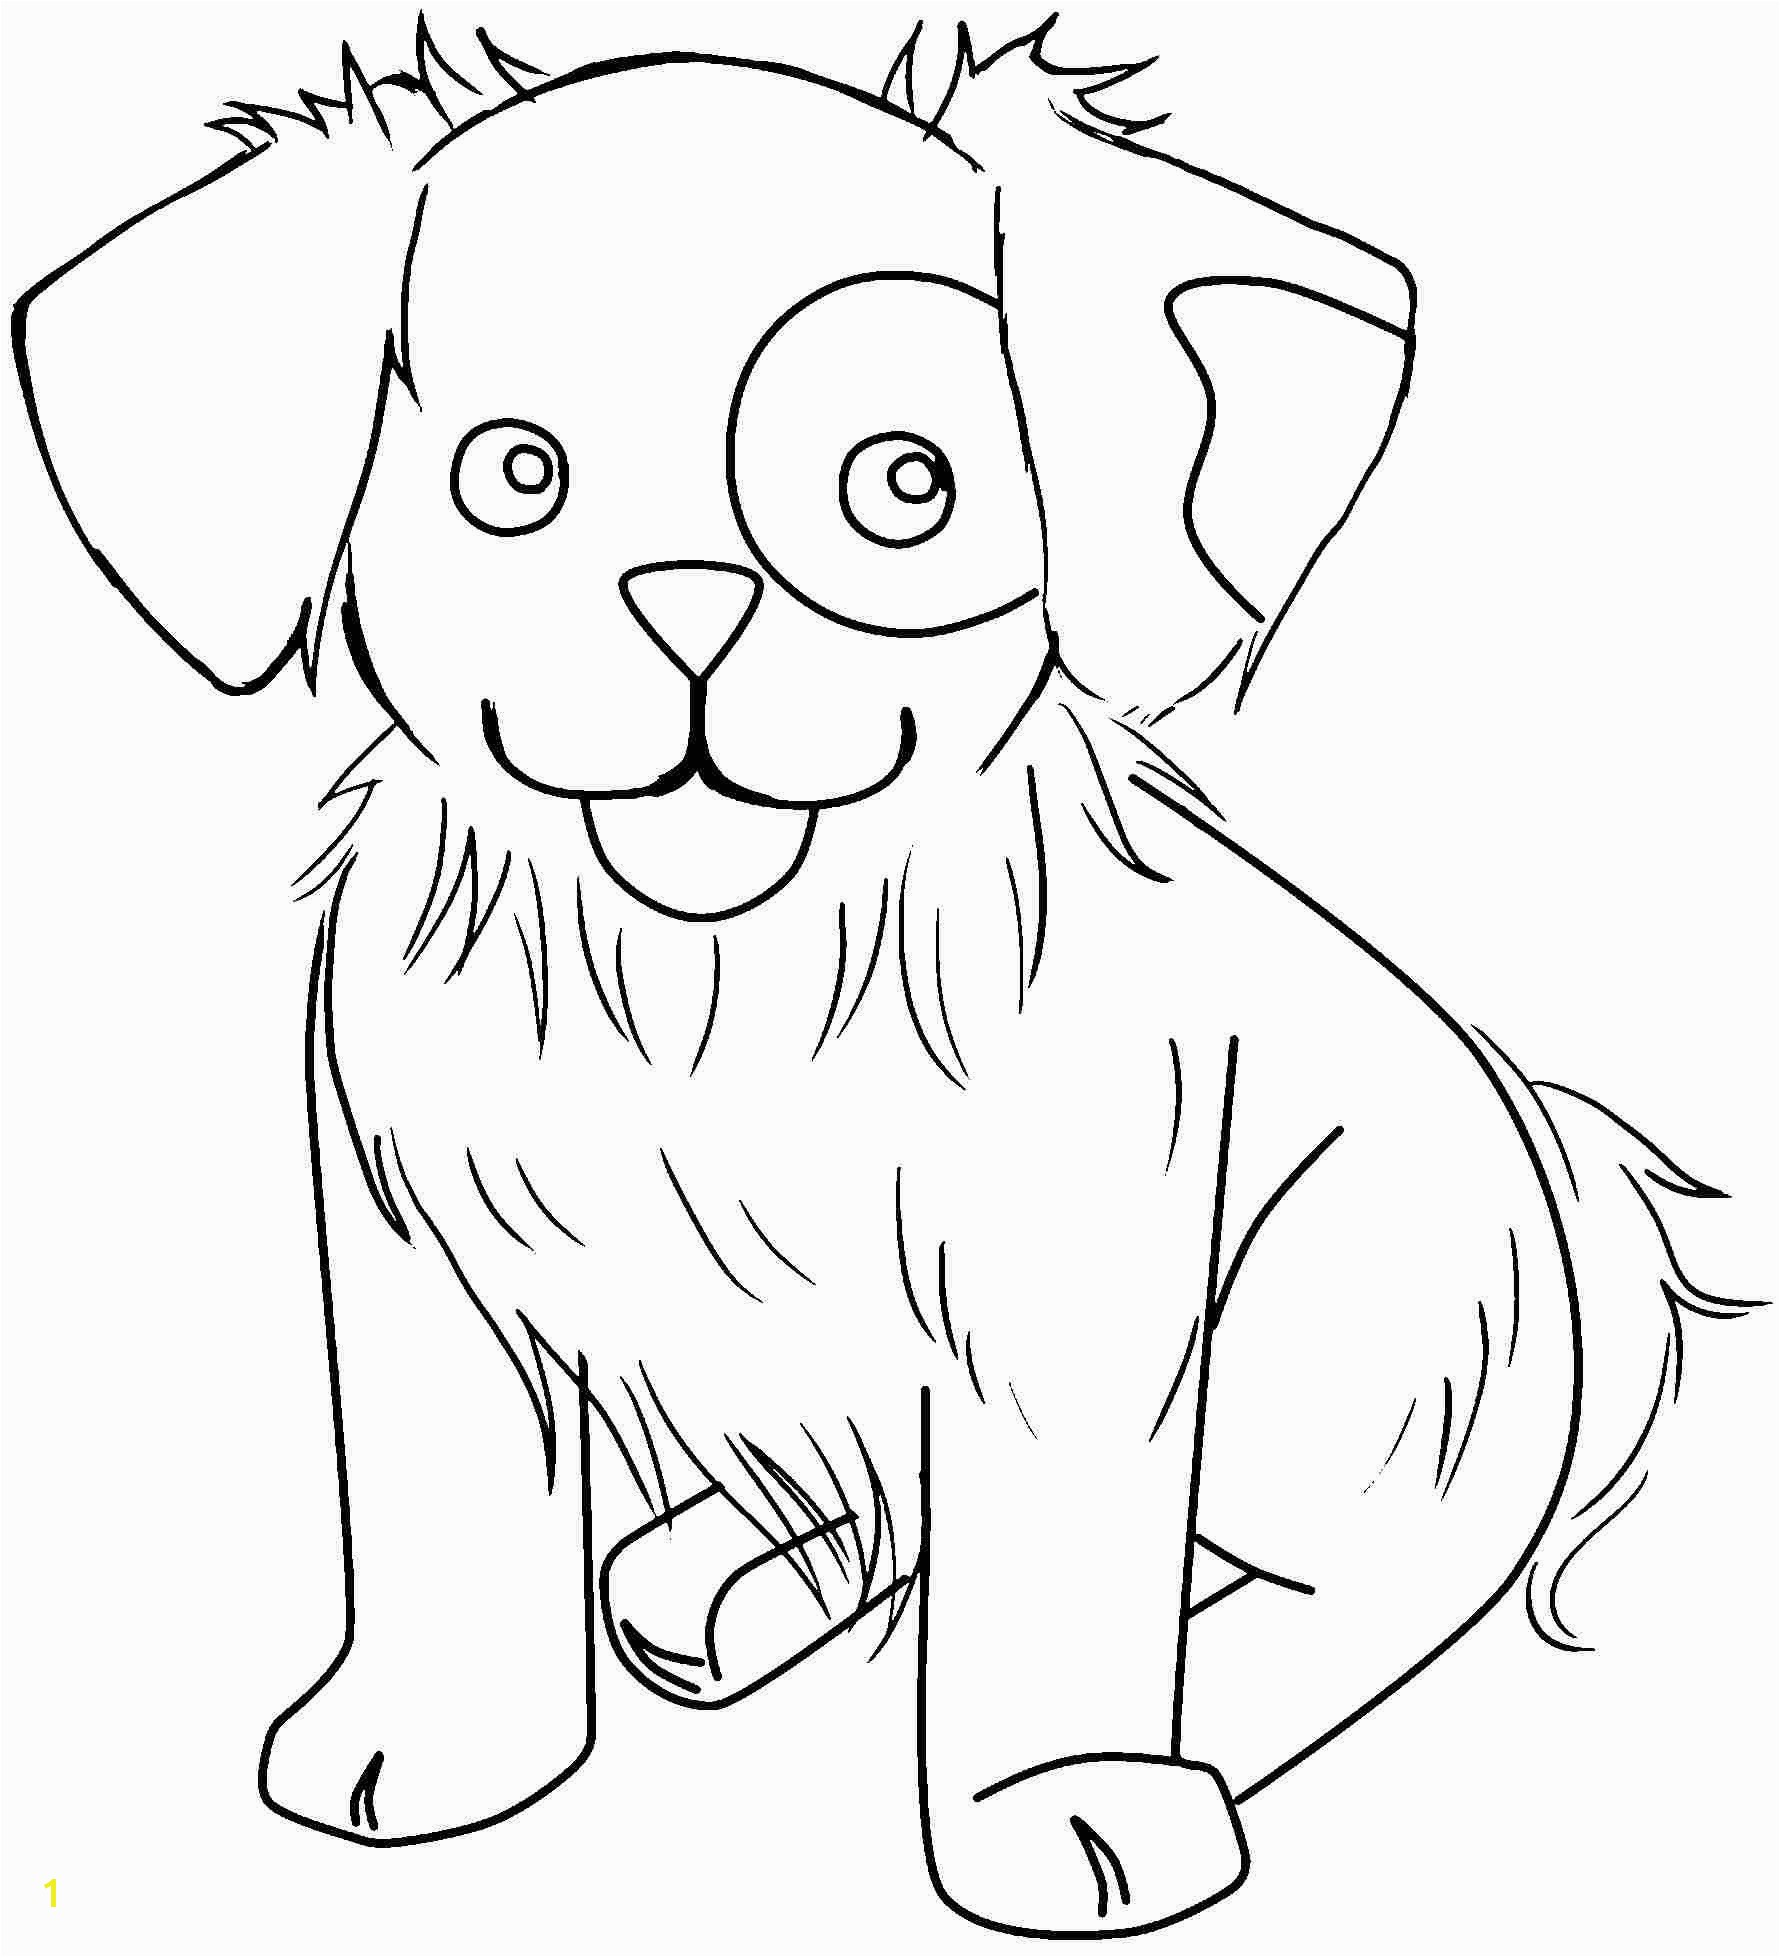 Animal Coloring Pages Pdf New Animal Coloring Pages Pdf Inspirationa Printable Animal Coloring